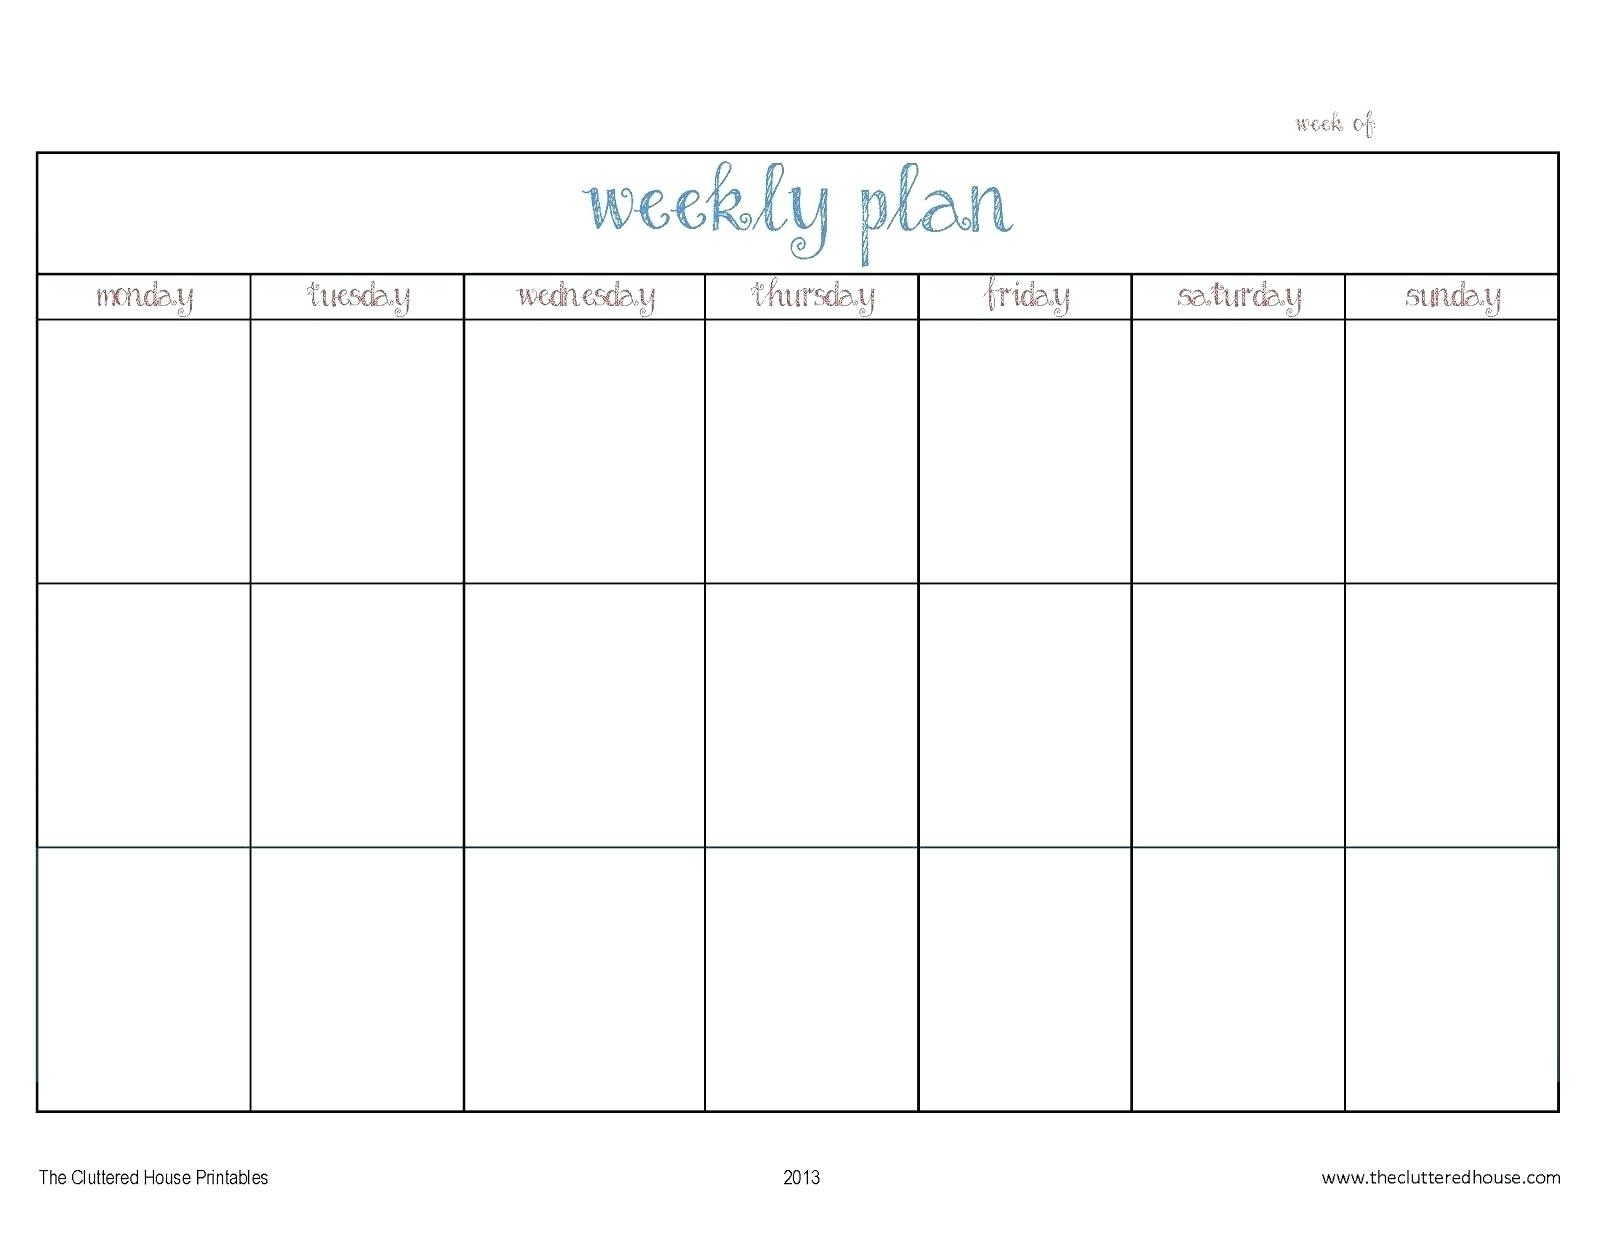 Calendar Template Monday Through Friday • Printable Blank Calendar within Monday Thru Friday Calendar 2020 Template